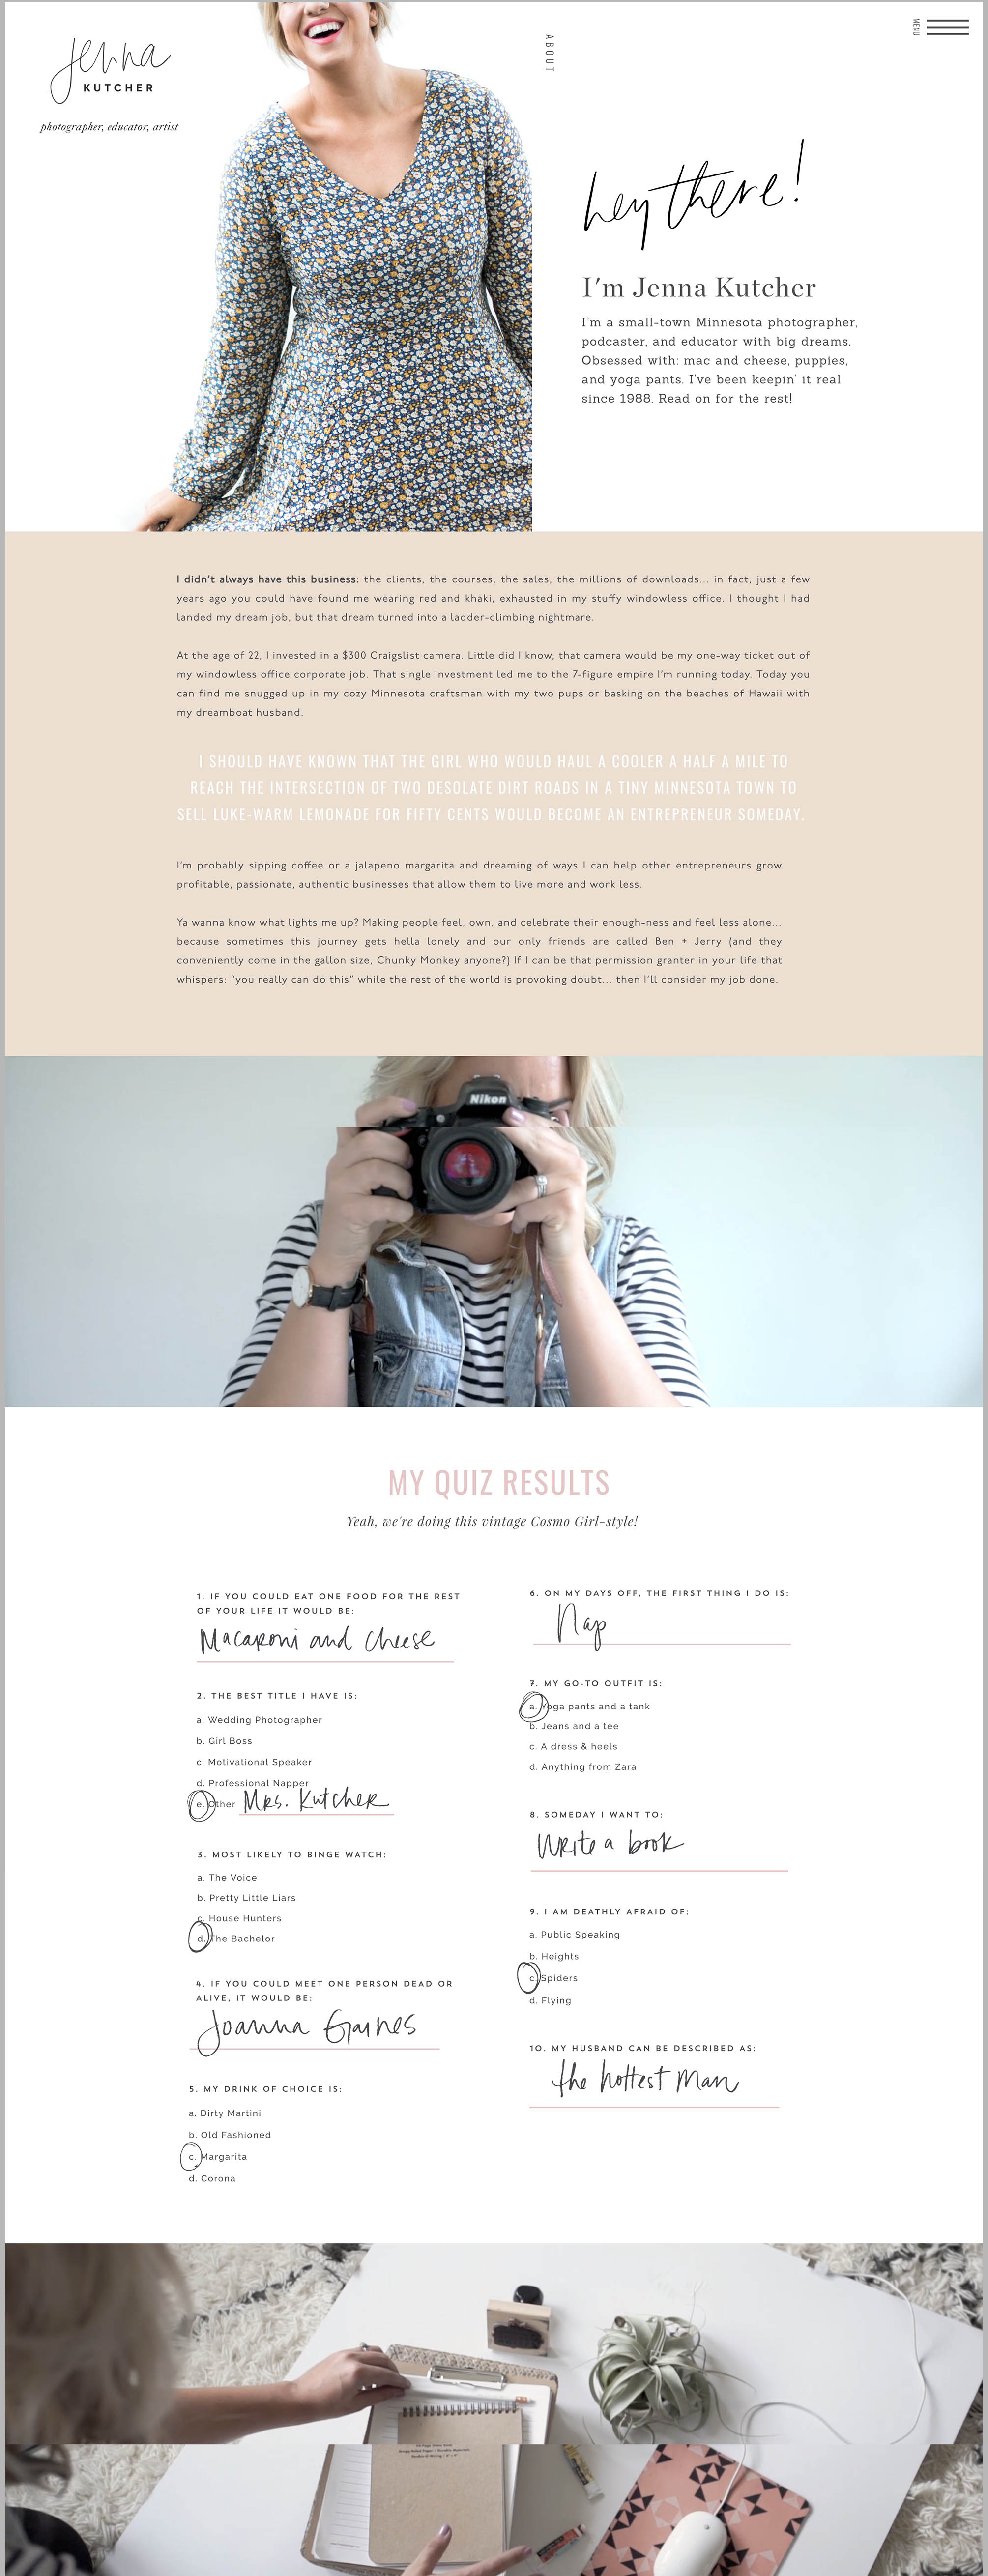 Jenna Kutcher's About page  is so much fun! I love the illustrated 'quiz results' section with handwritten elements - such a great way to make the page more personal.